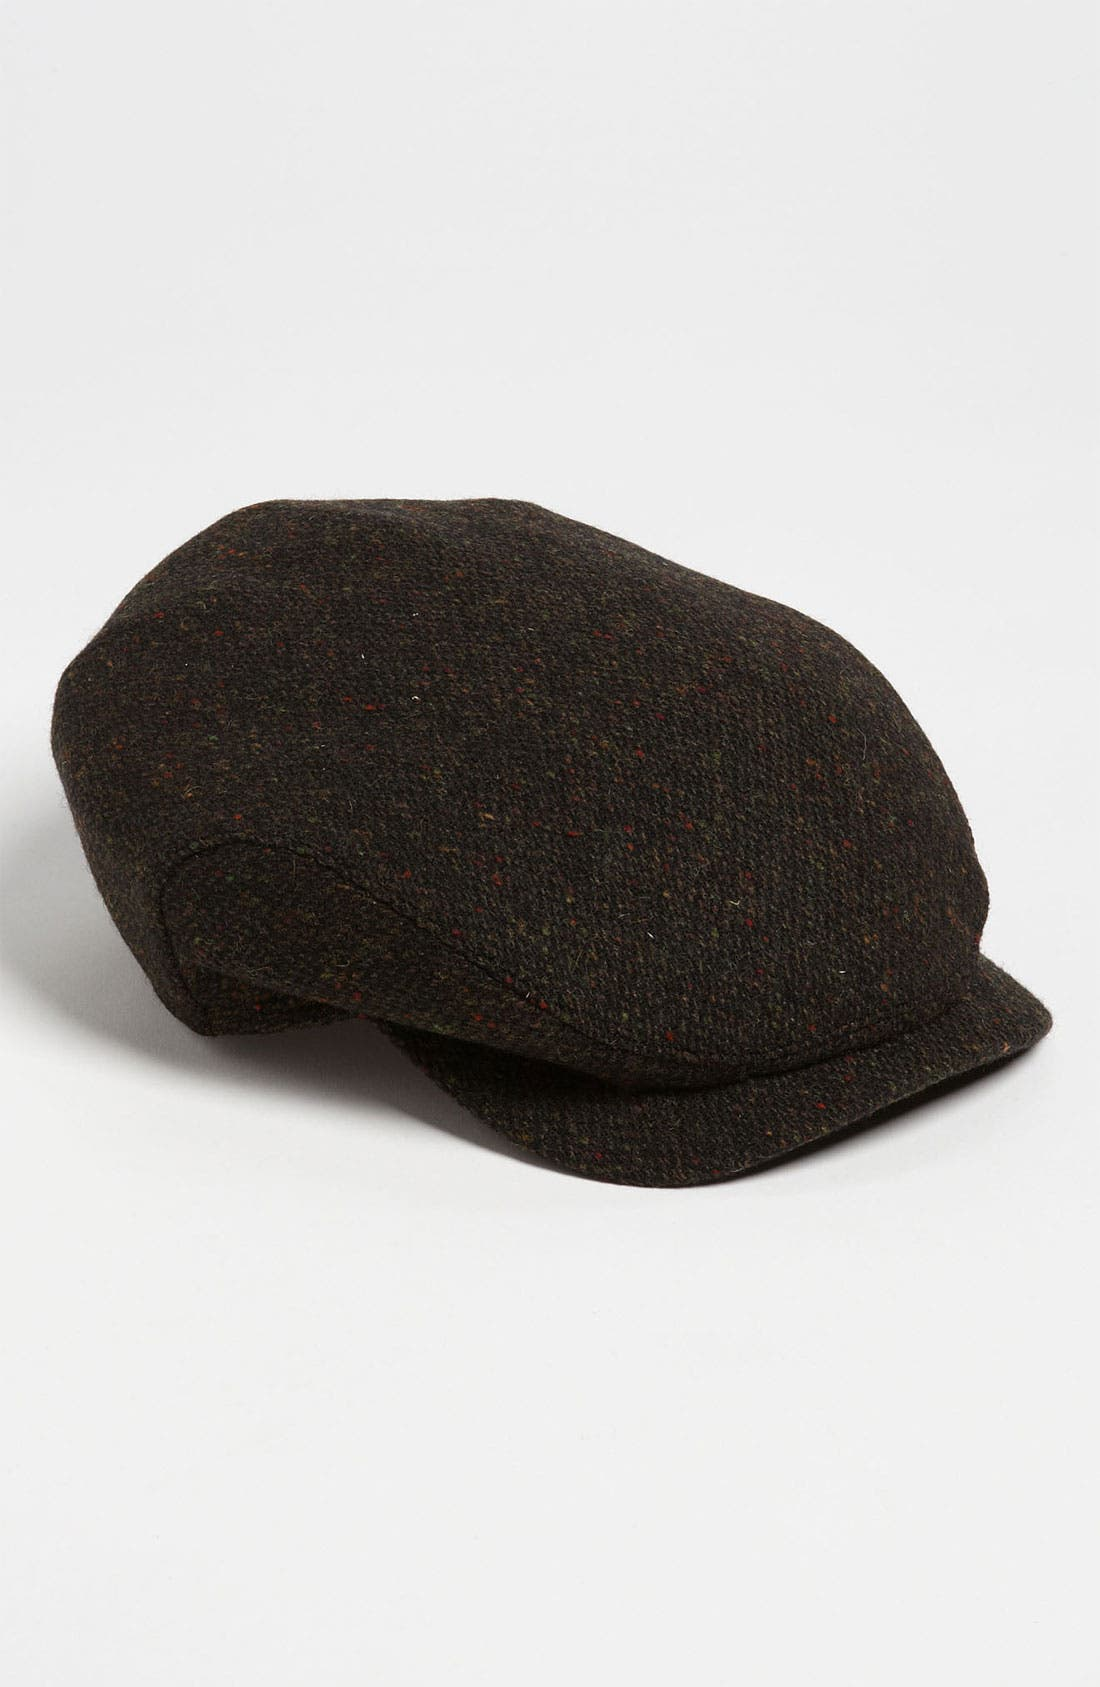 Main Image - Wigens Donegal Tweed Earflap Driving Cap